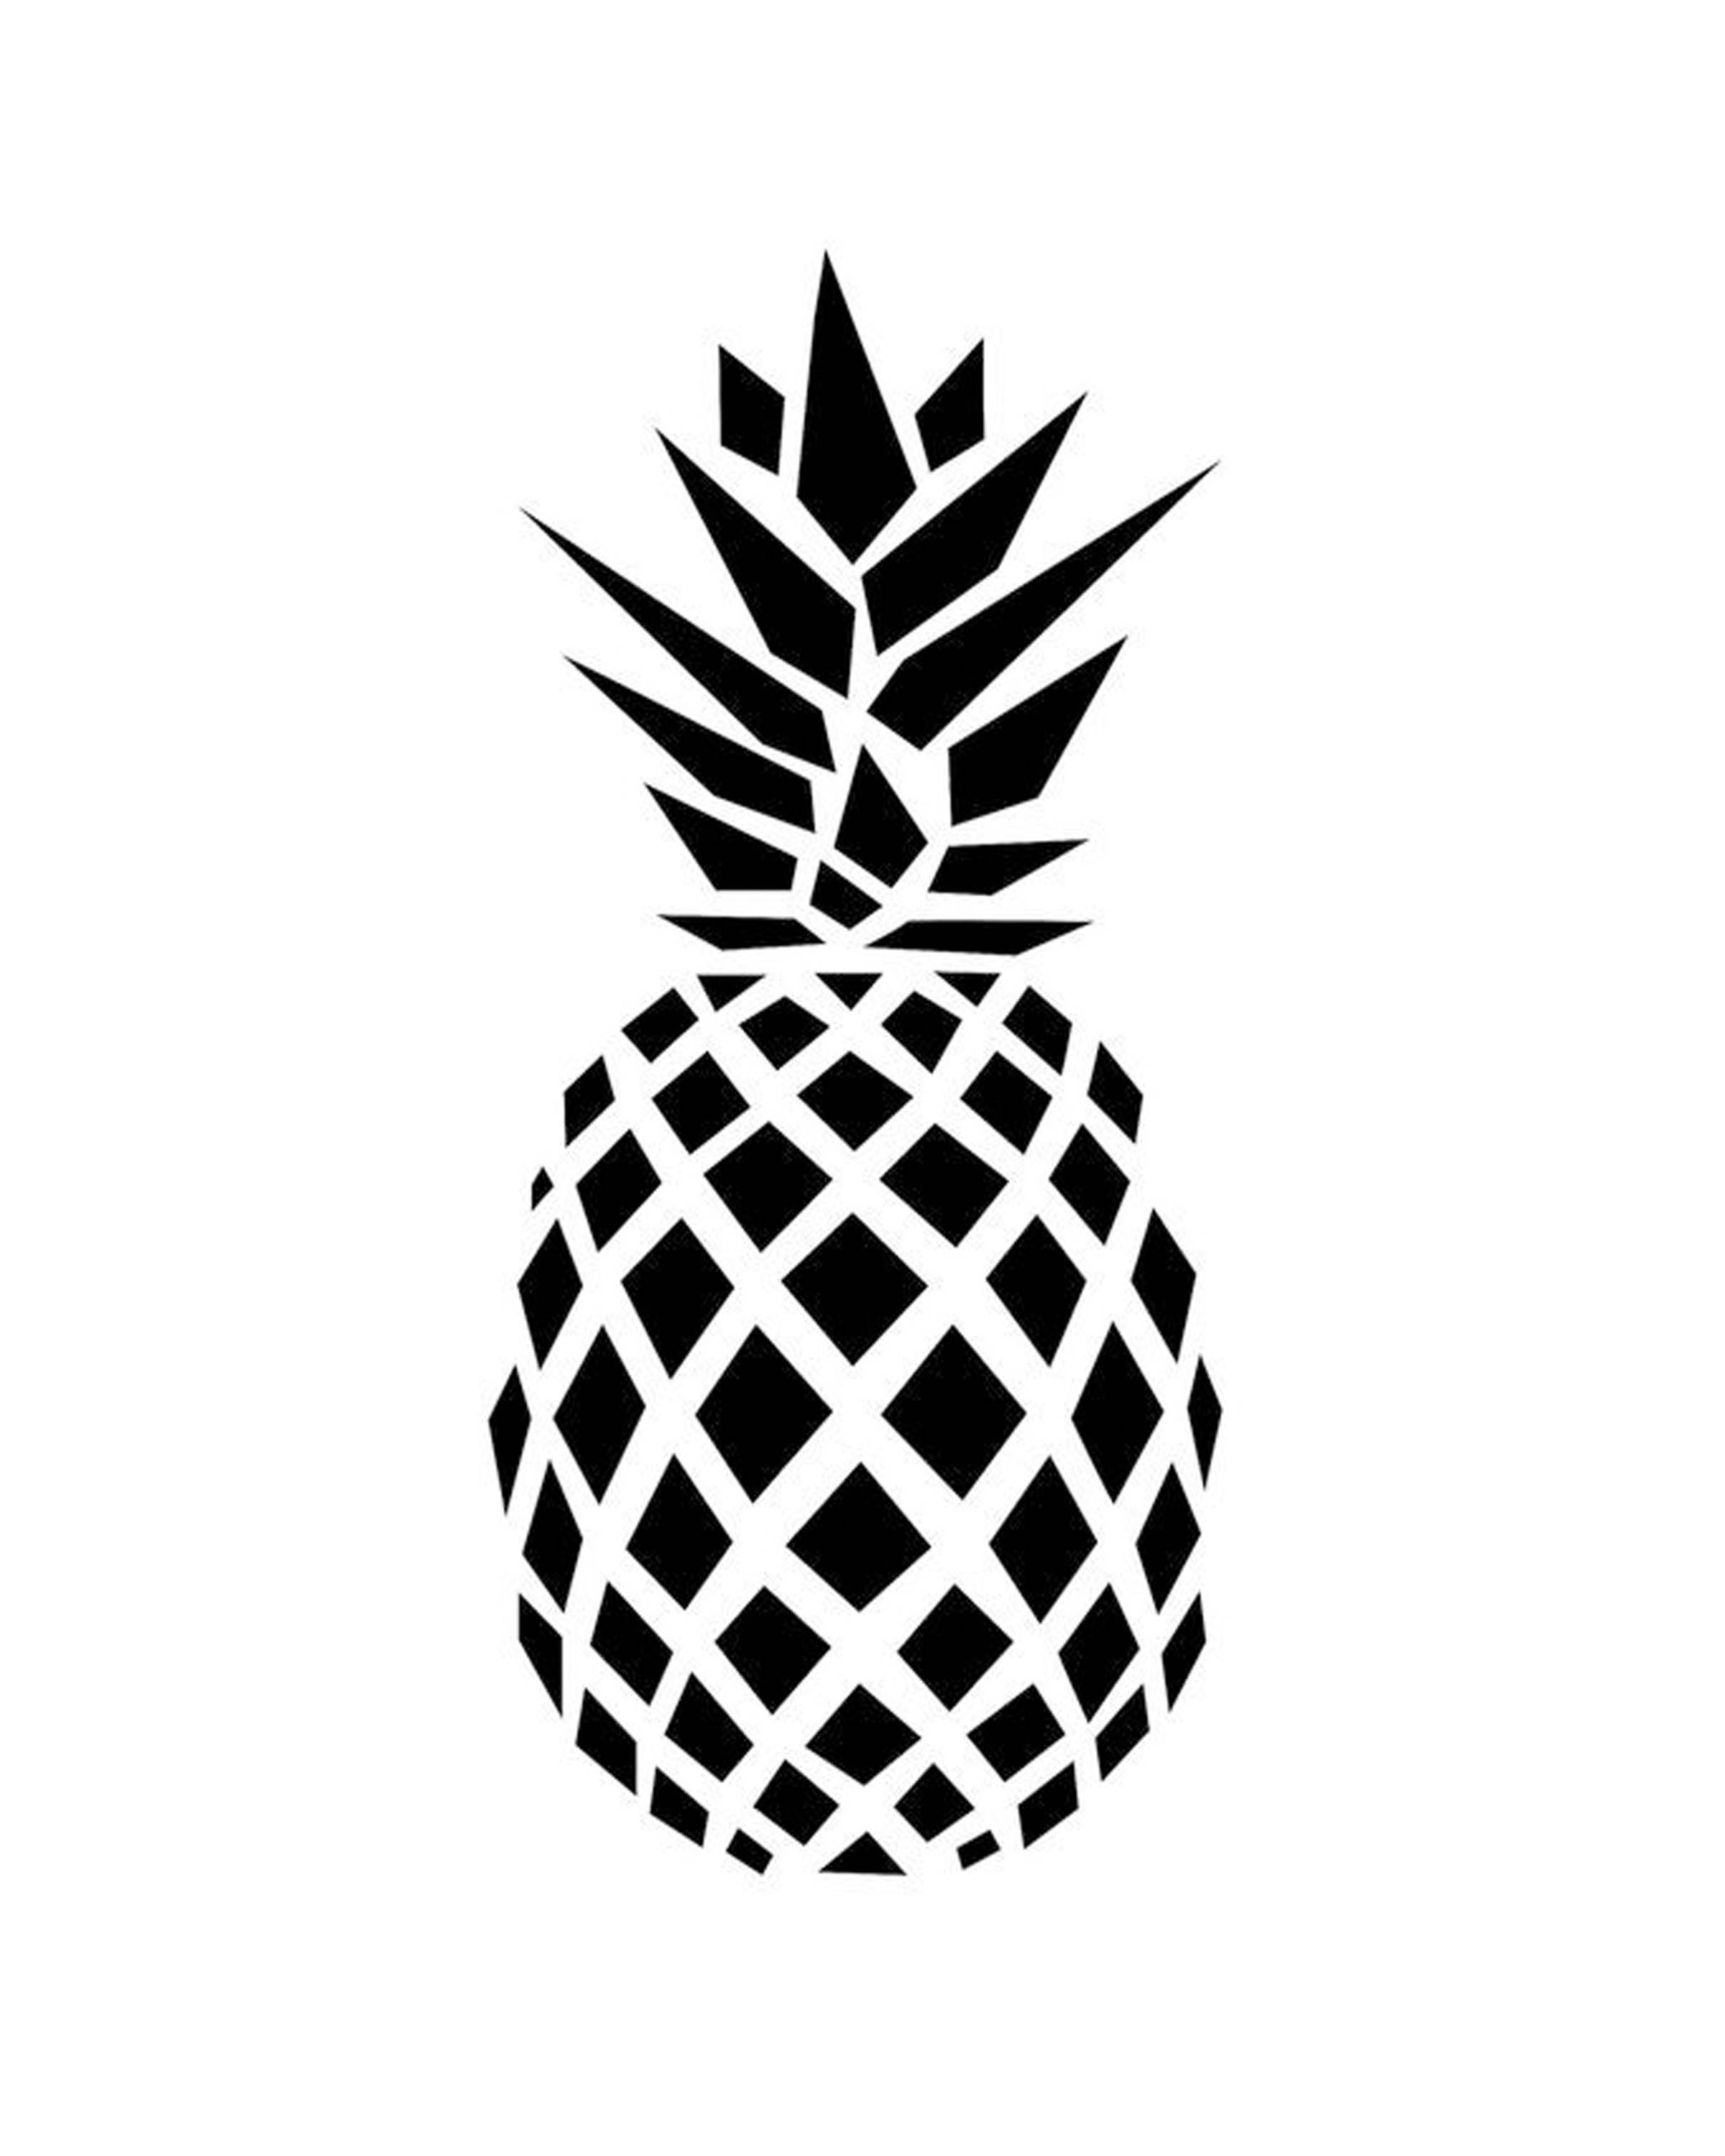 Pineapple Silhouette.